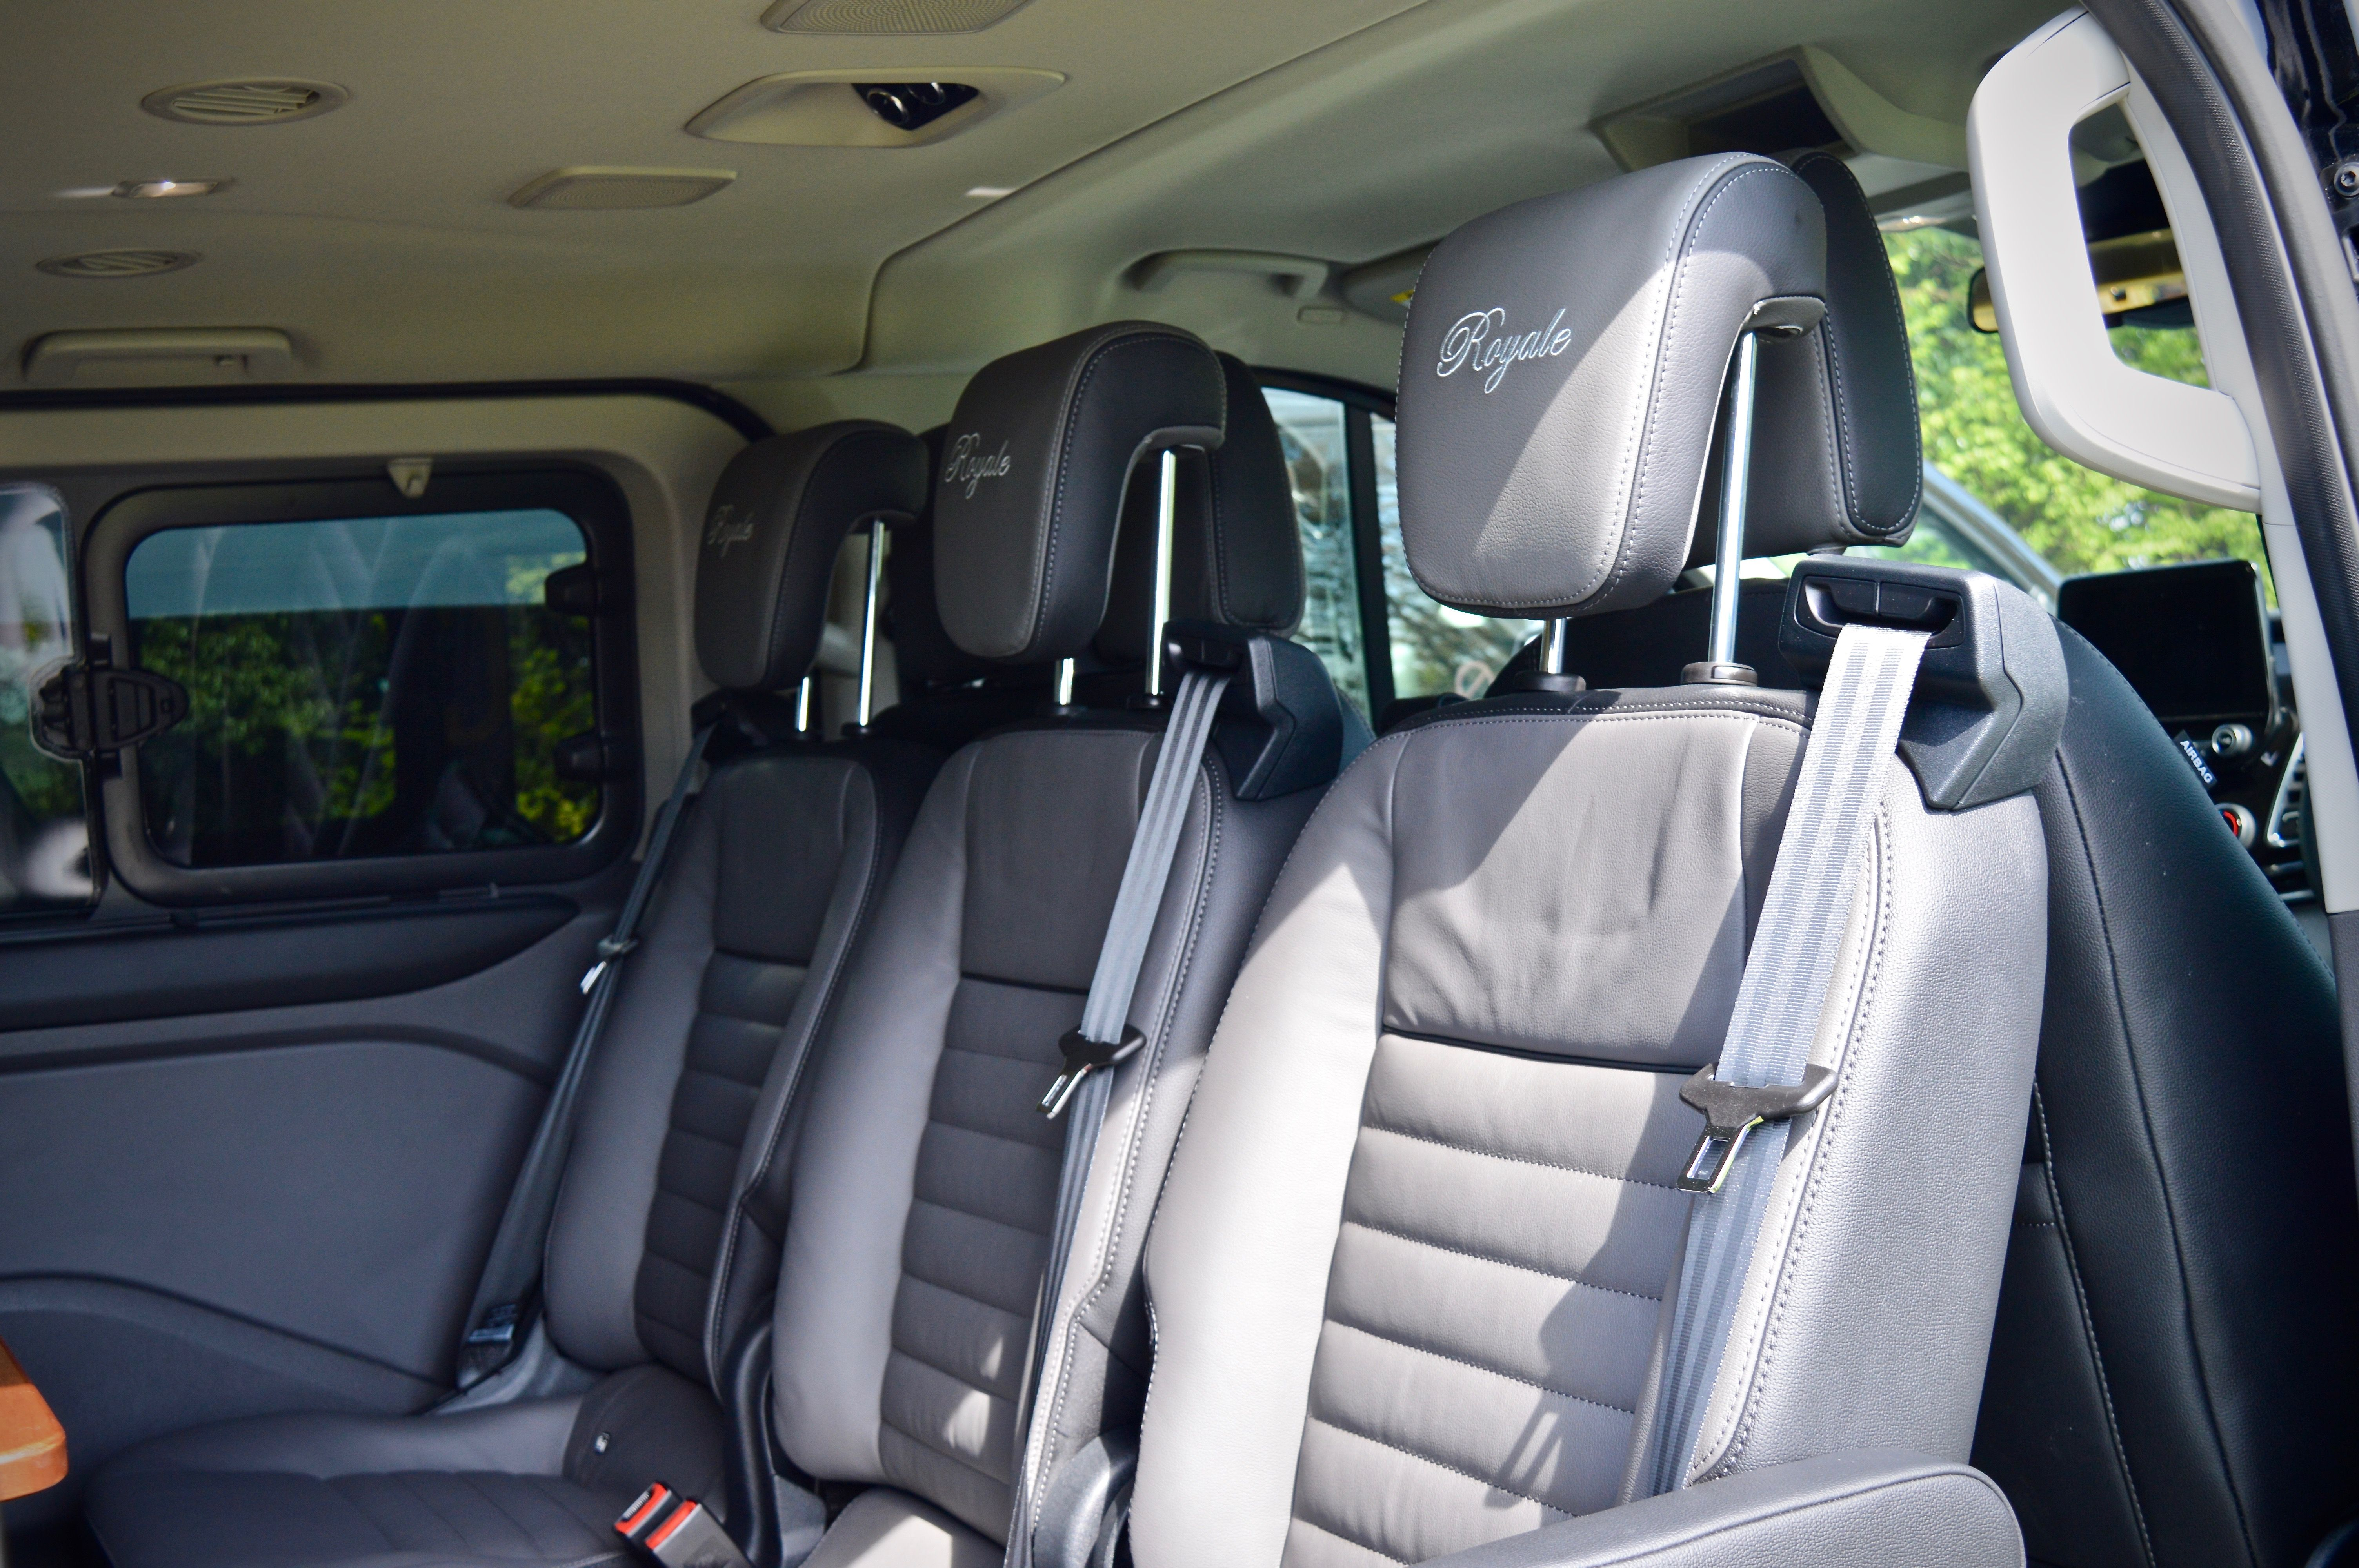 A detailed view of the leather seats within the taxi